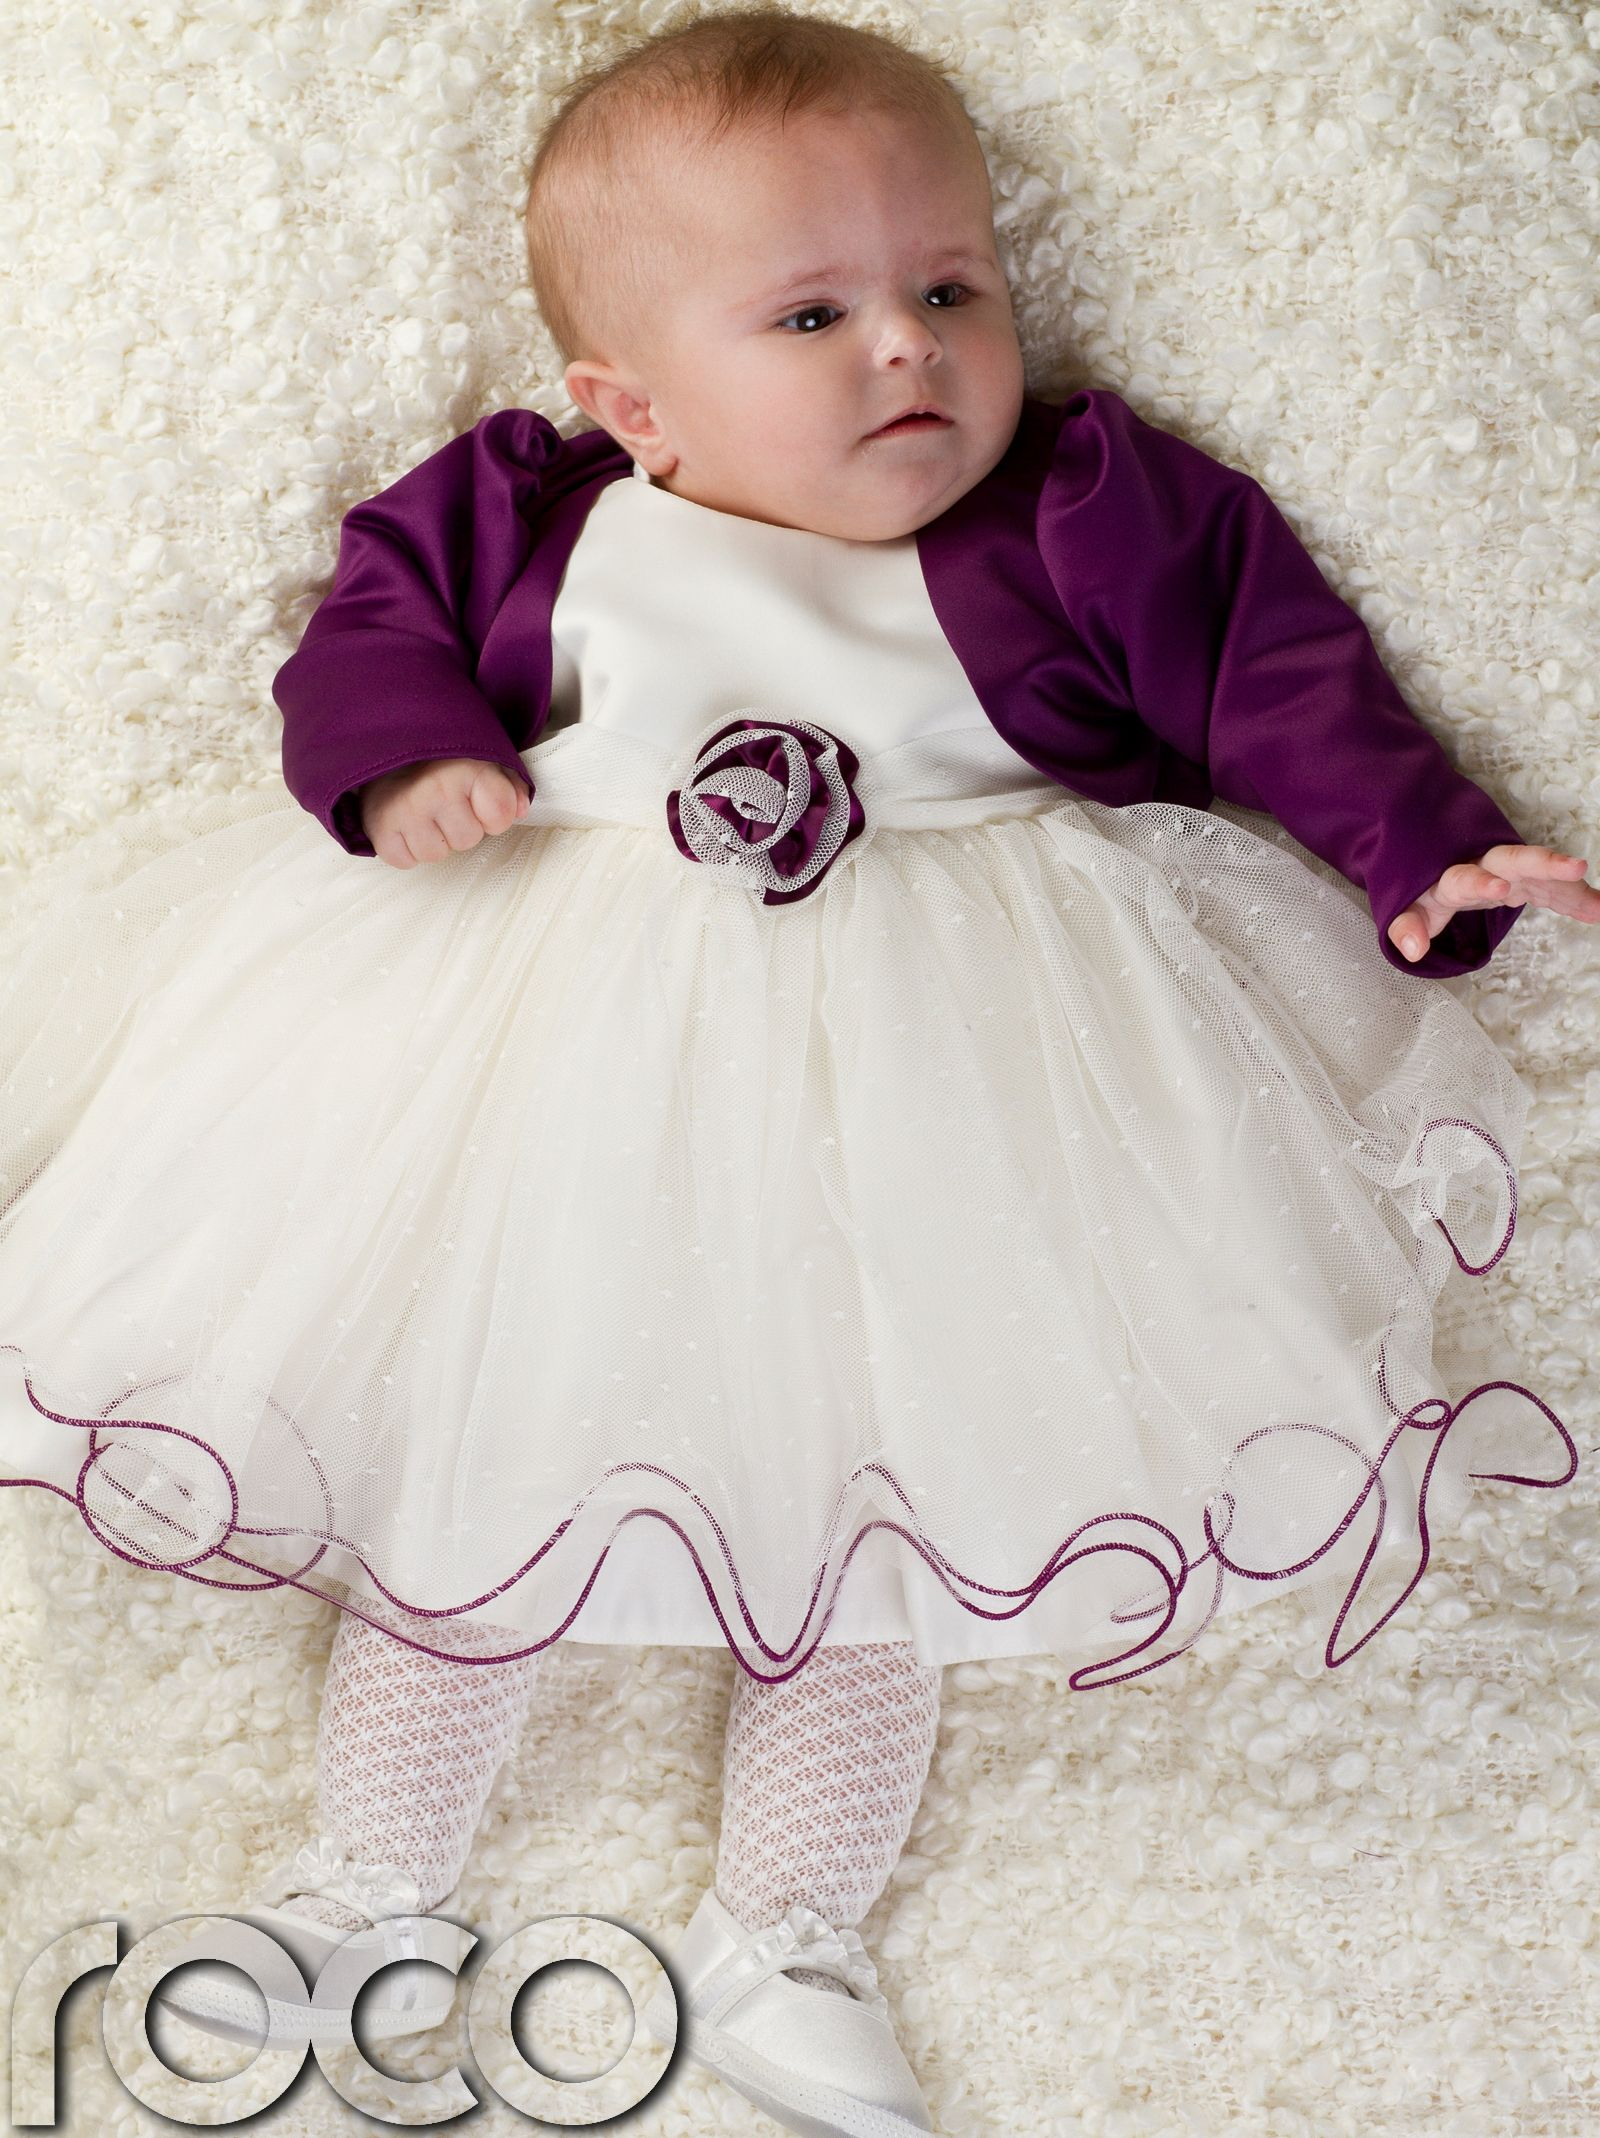 wedding dresses for girls Baby Girls Purple Ivory Dress Bolero Jacket Wedding Babys Bridesmaid Dresses in Baby Clothes Shoes Accessories Girls Clothing Months